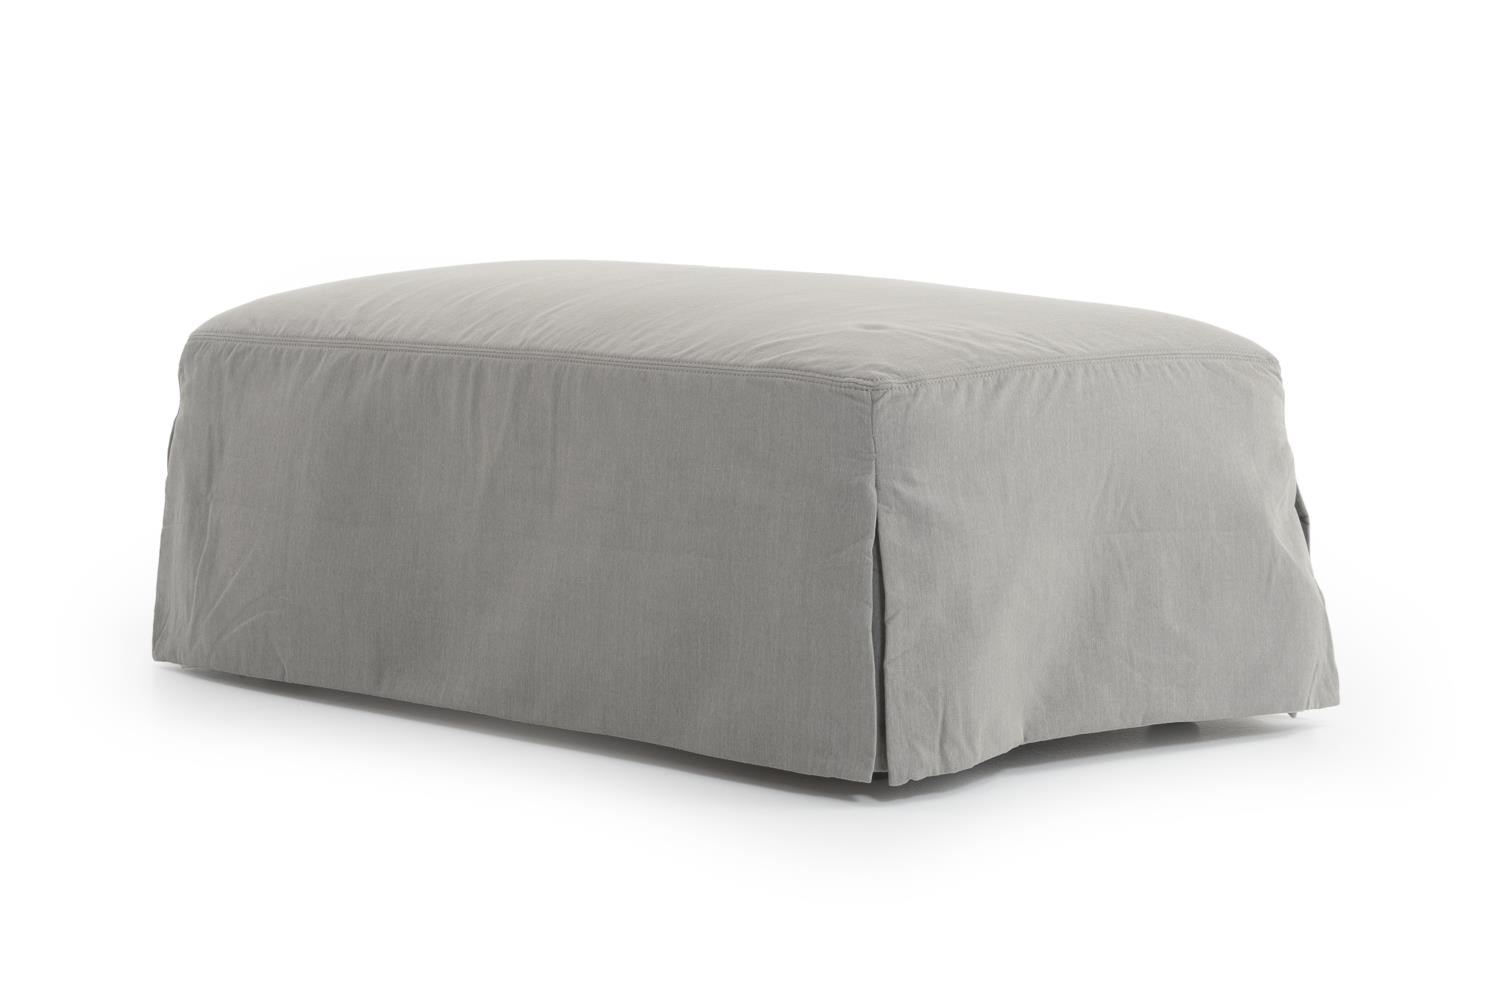 Synergy Home Furnishings 1300 Ottoman - Item Number: 1300-49 -30 3910-94